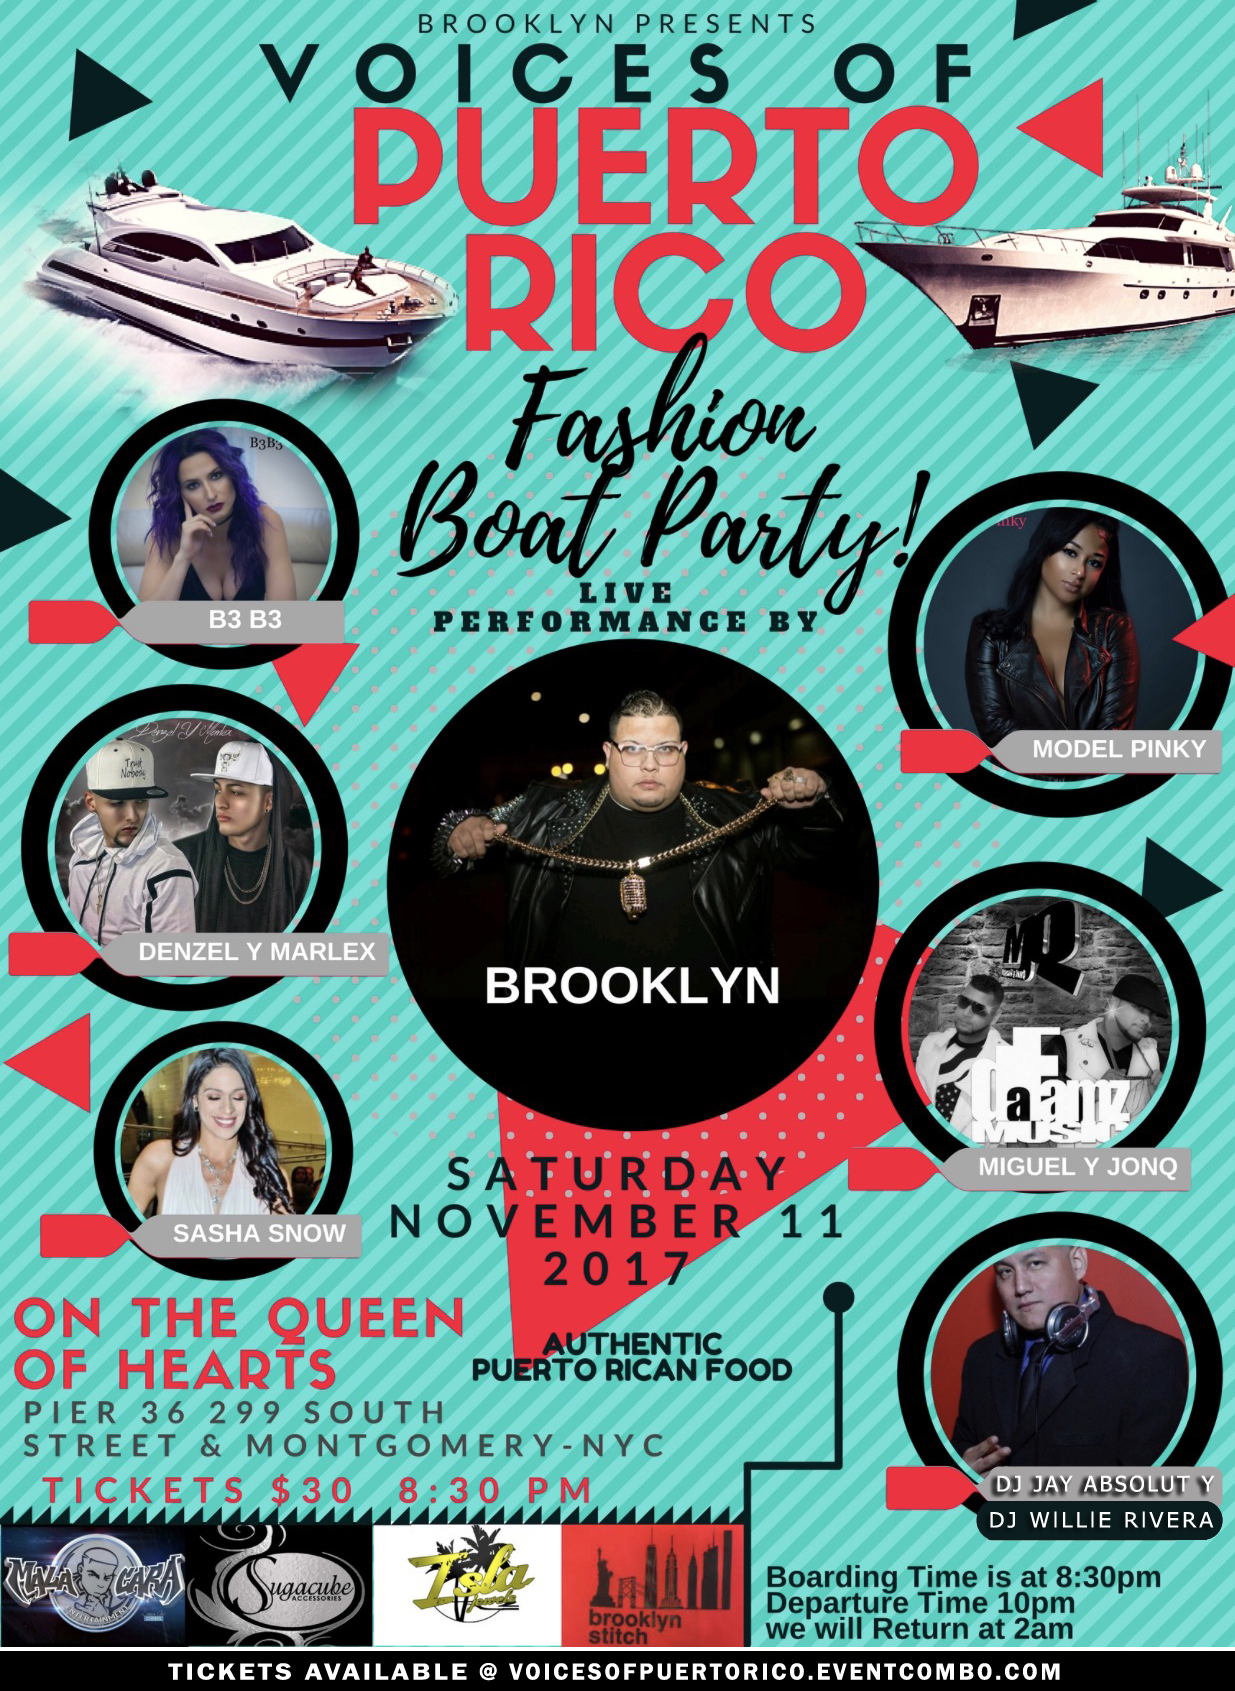 Voices Of Puerto Rico Fashion Boat Party